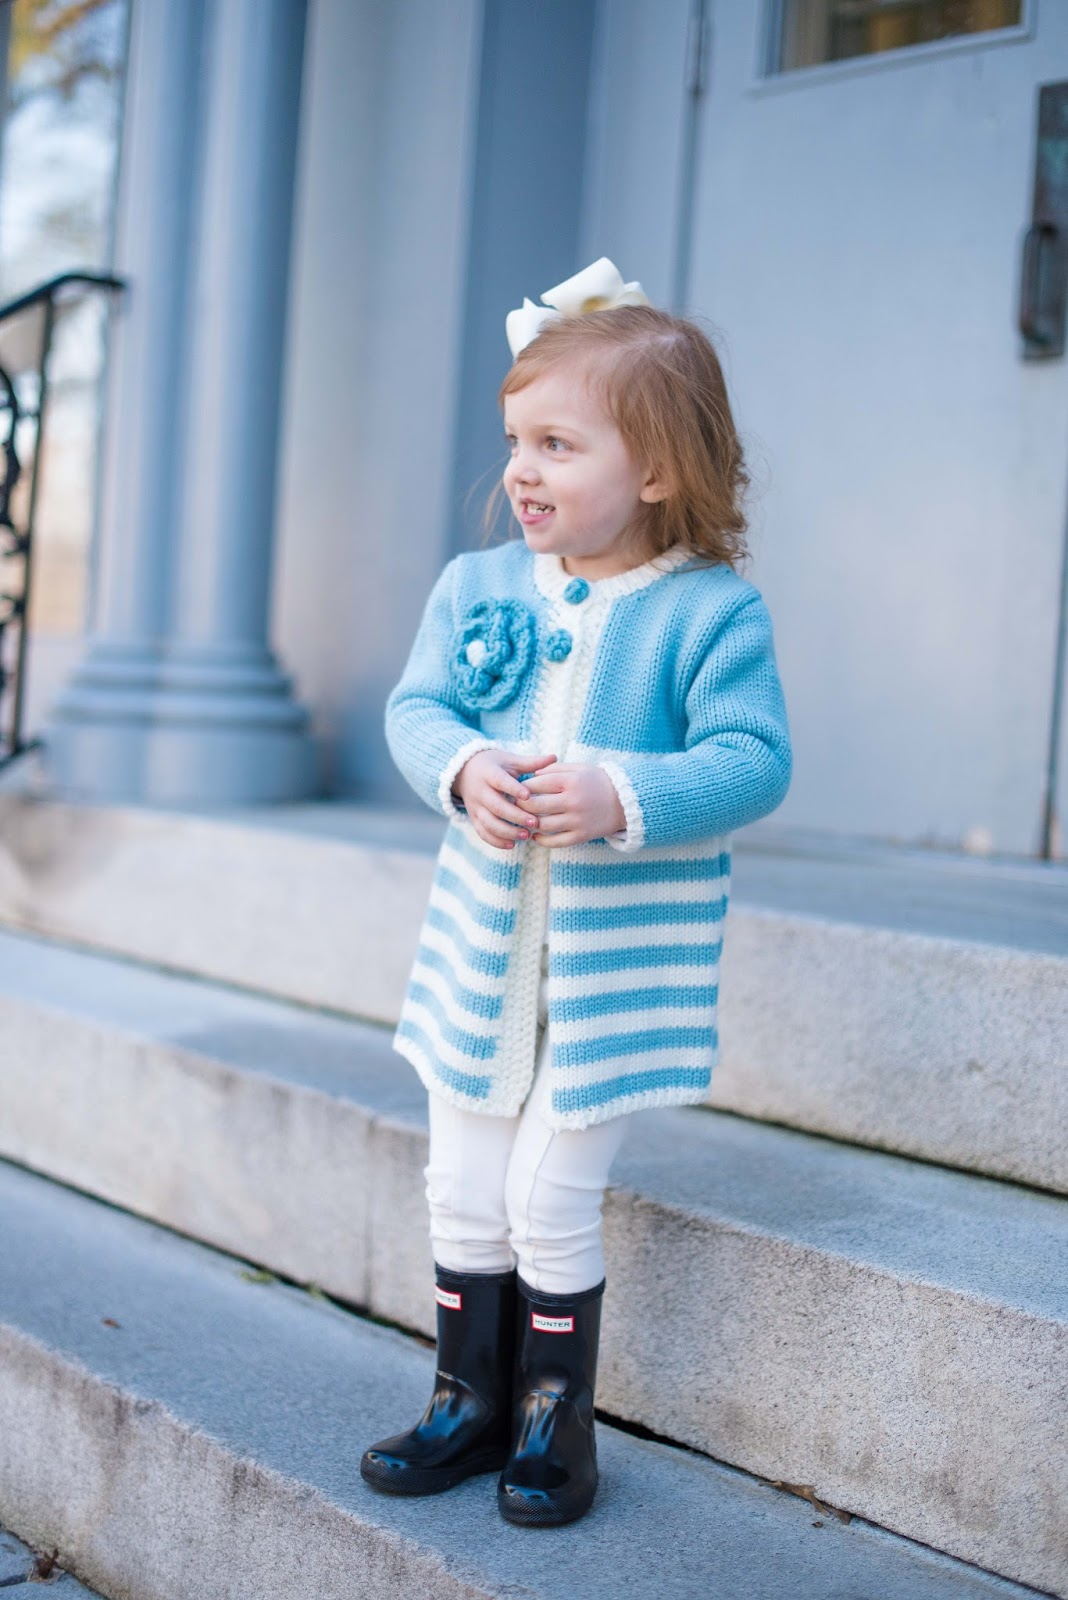 Winter Fashion for Toddlers - Something Delightful Blog